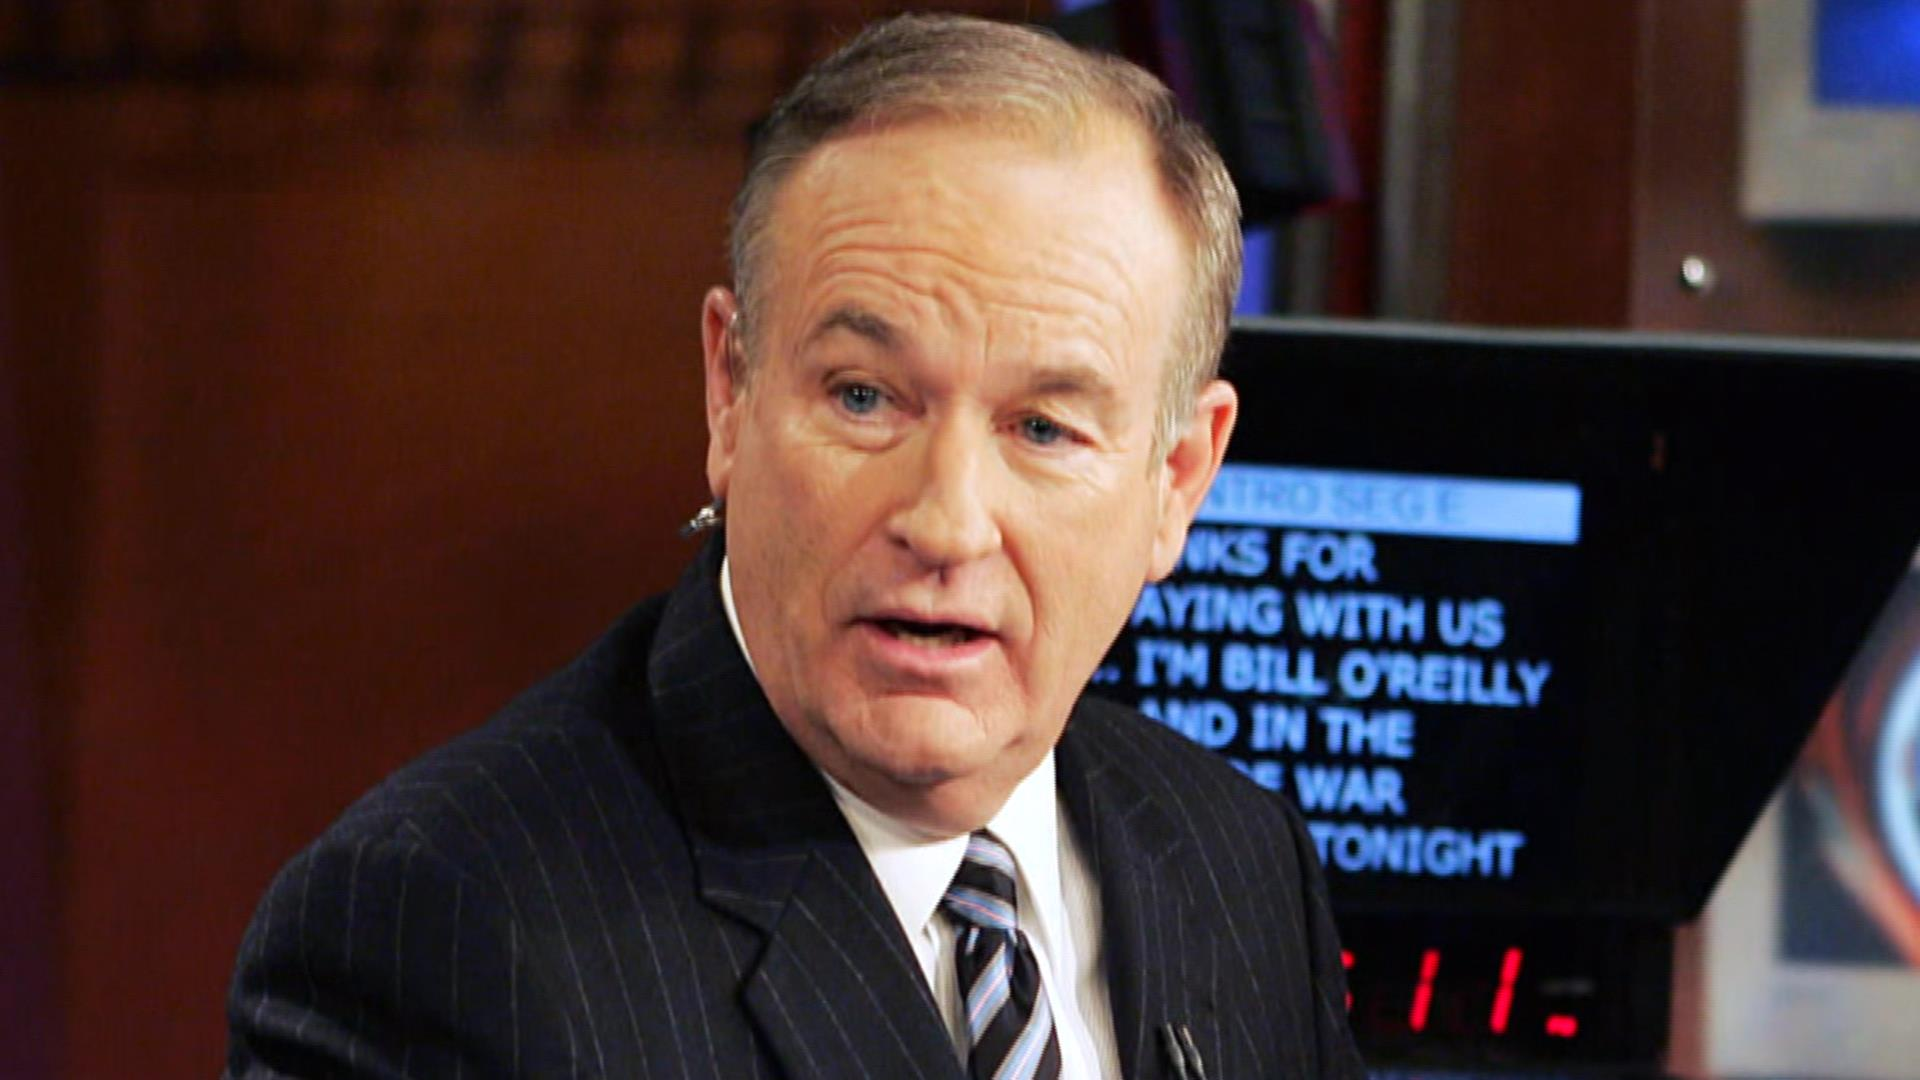 tdy_news_gabe_bill_oreilly_170420 fox news cuts ties with bill o'reilly, closing latest chapter on